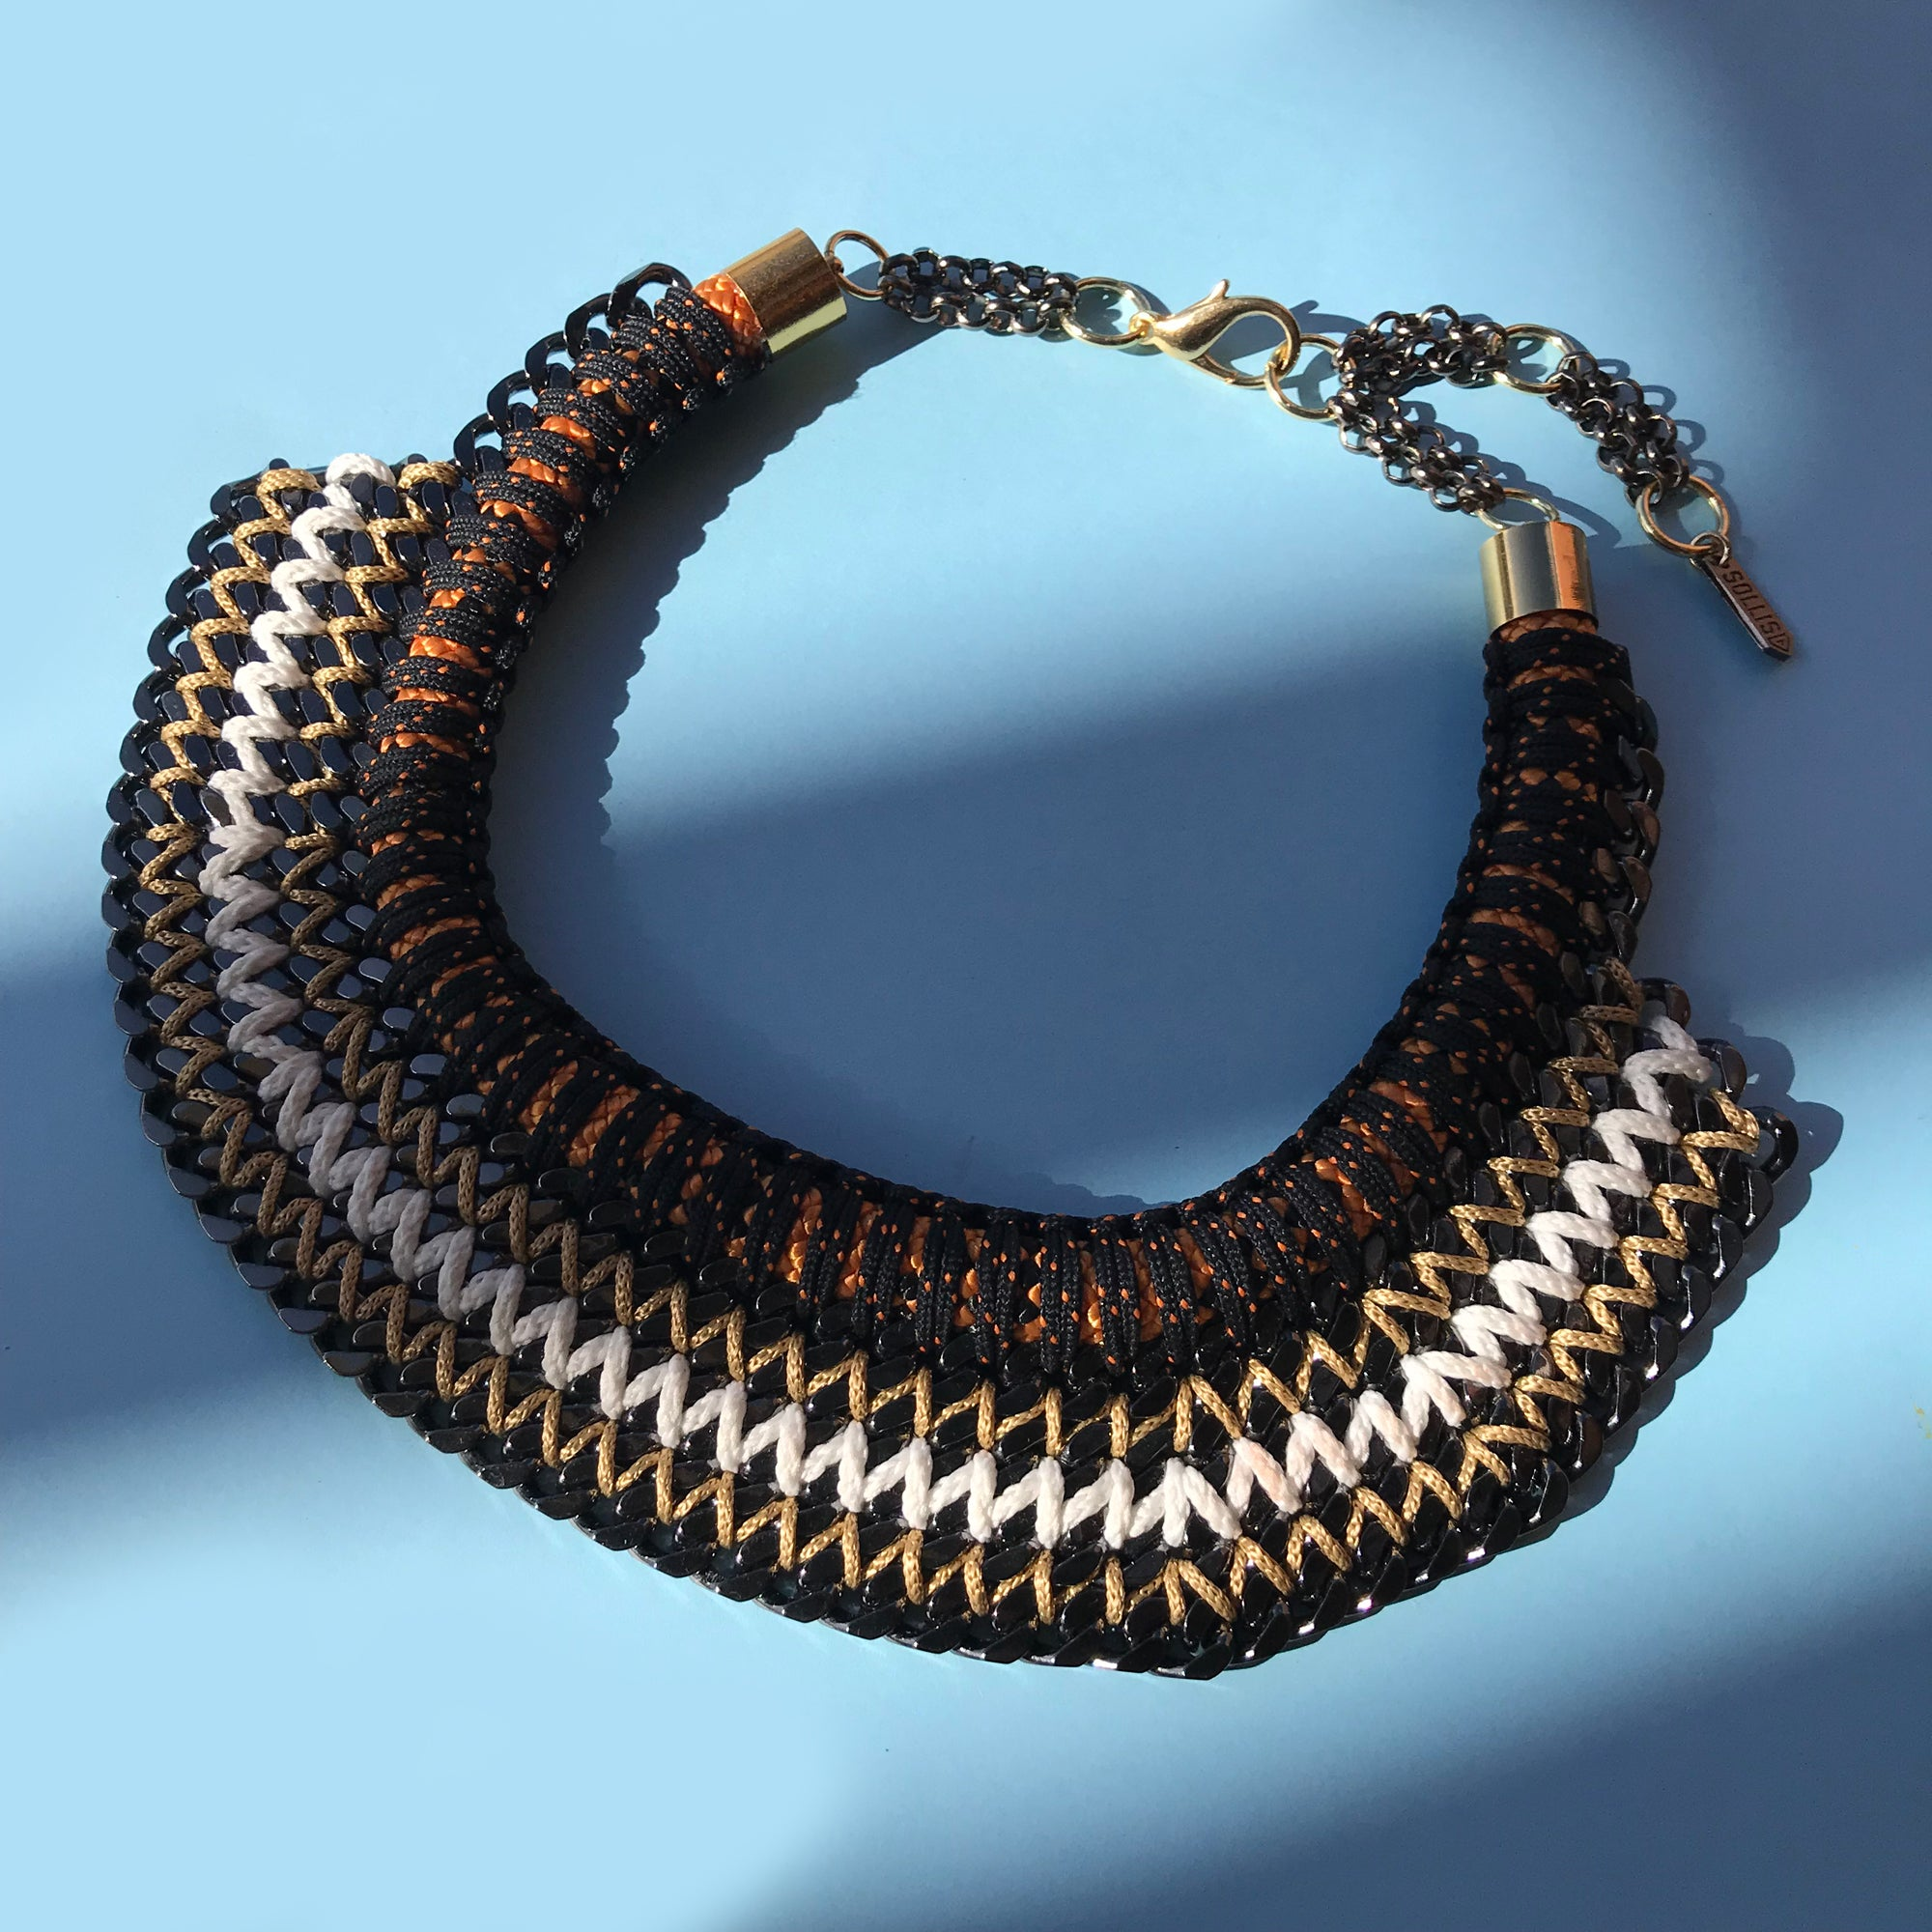 Unique necklace - No. 13 - 60% OFF